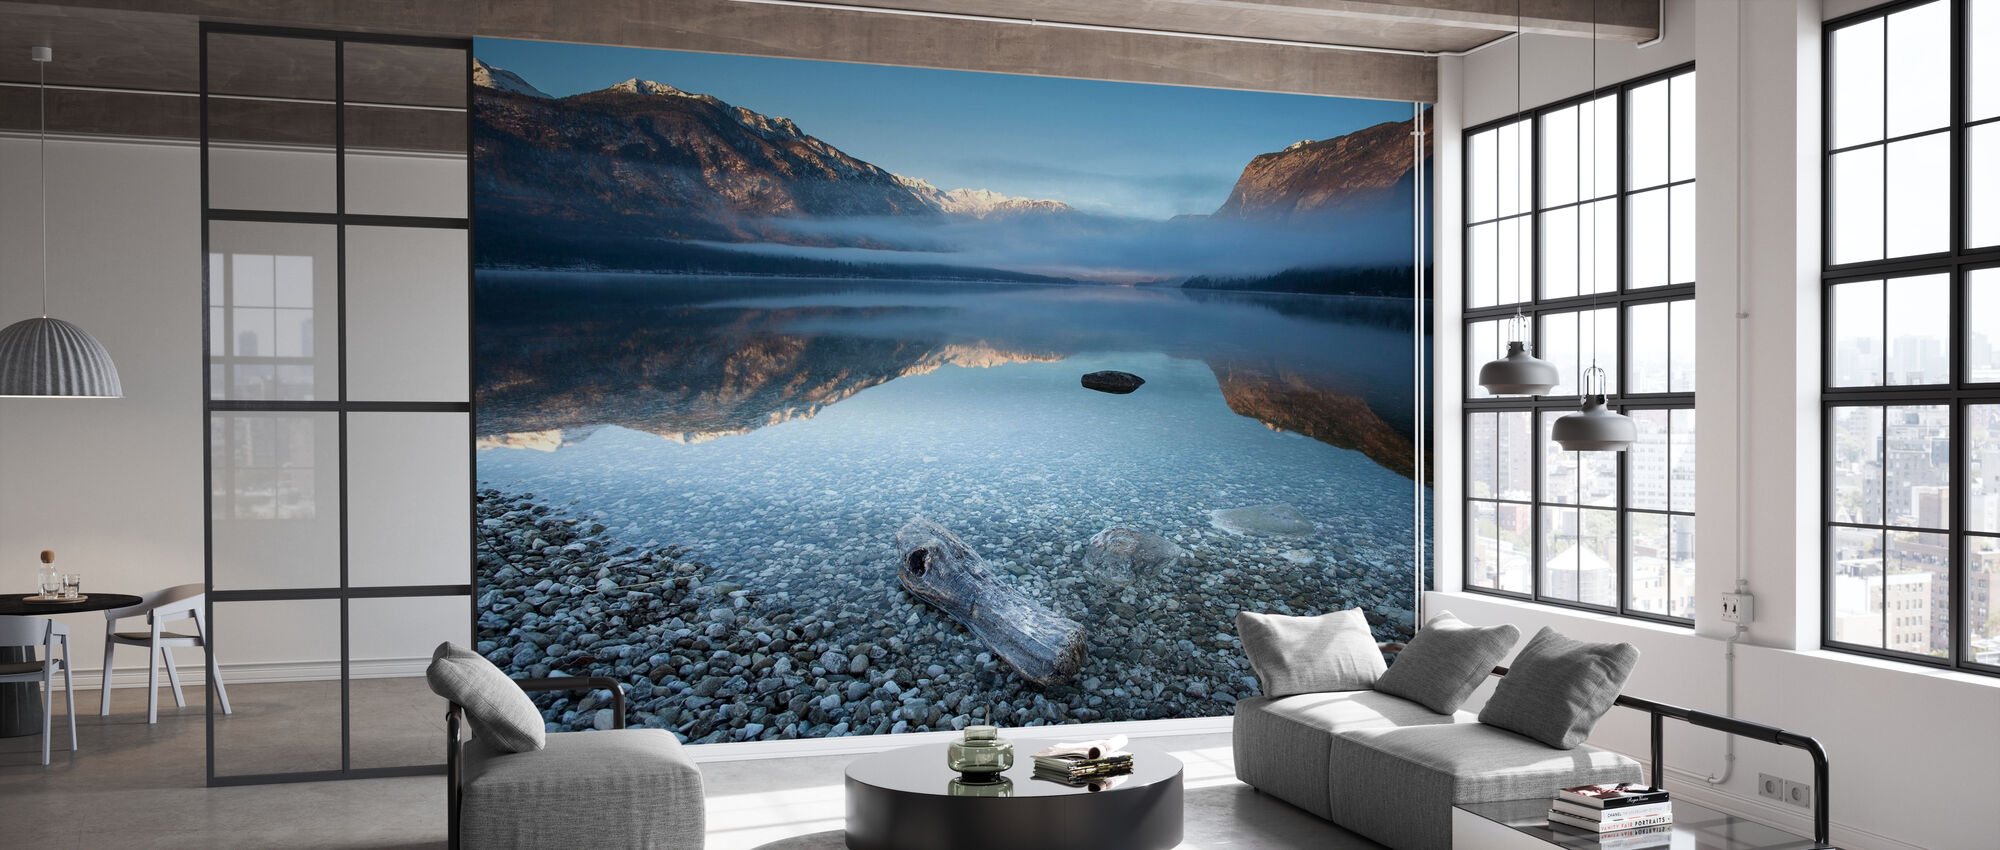 Bohinj's Tranquility - Wallpaper - Office